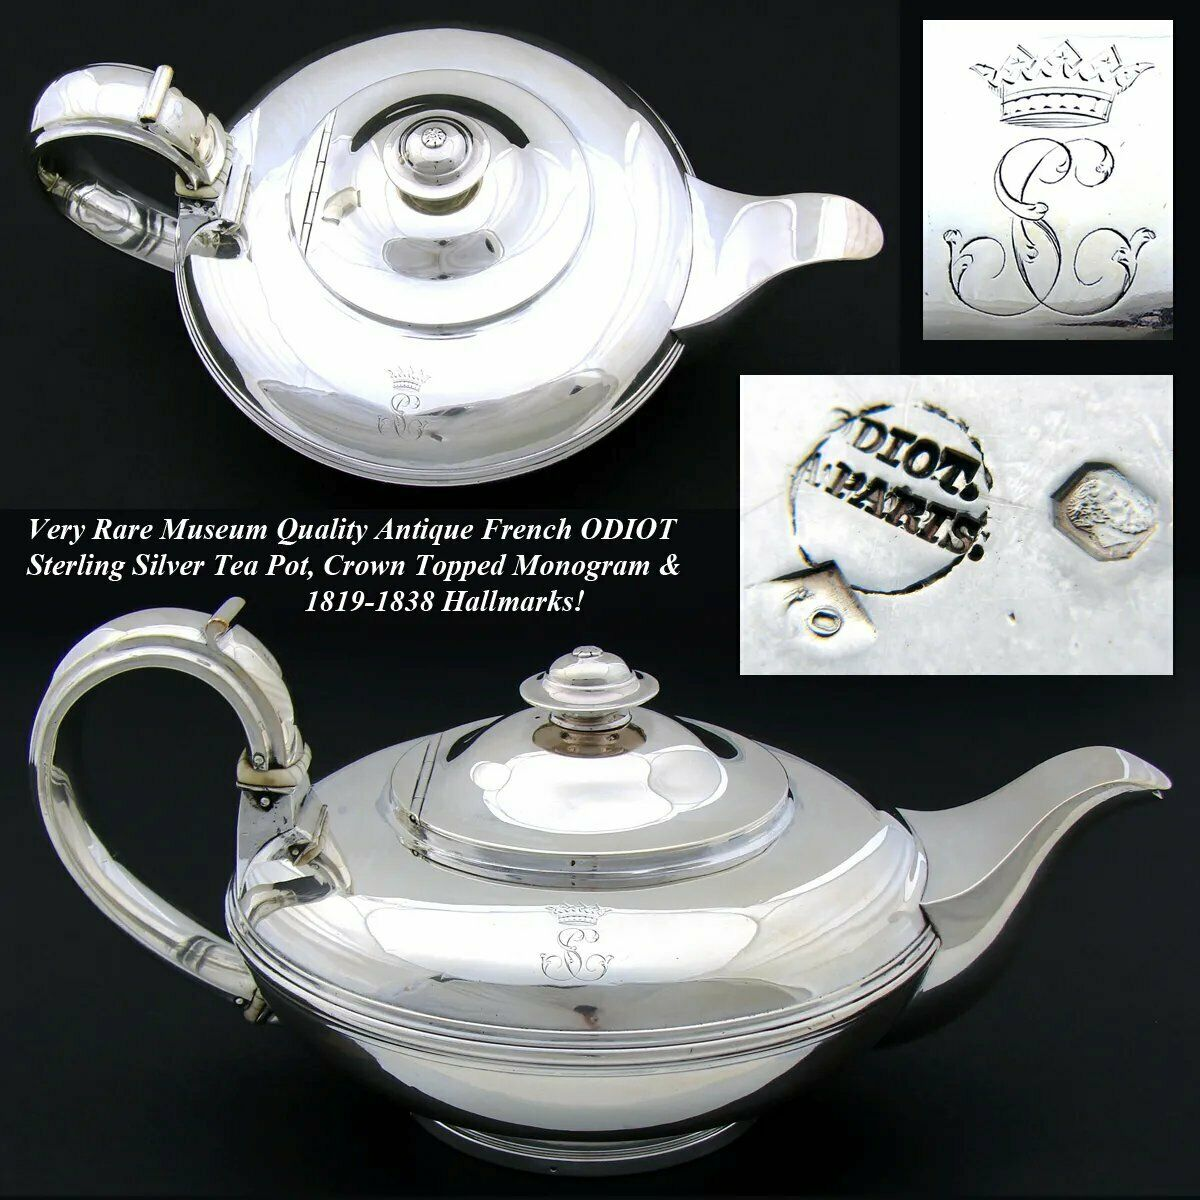 Antique French ODIOT Sterling Silver Tea Pot, Crown Topped Monogram, 1819-1838